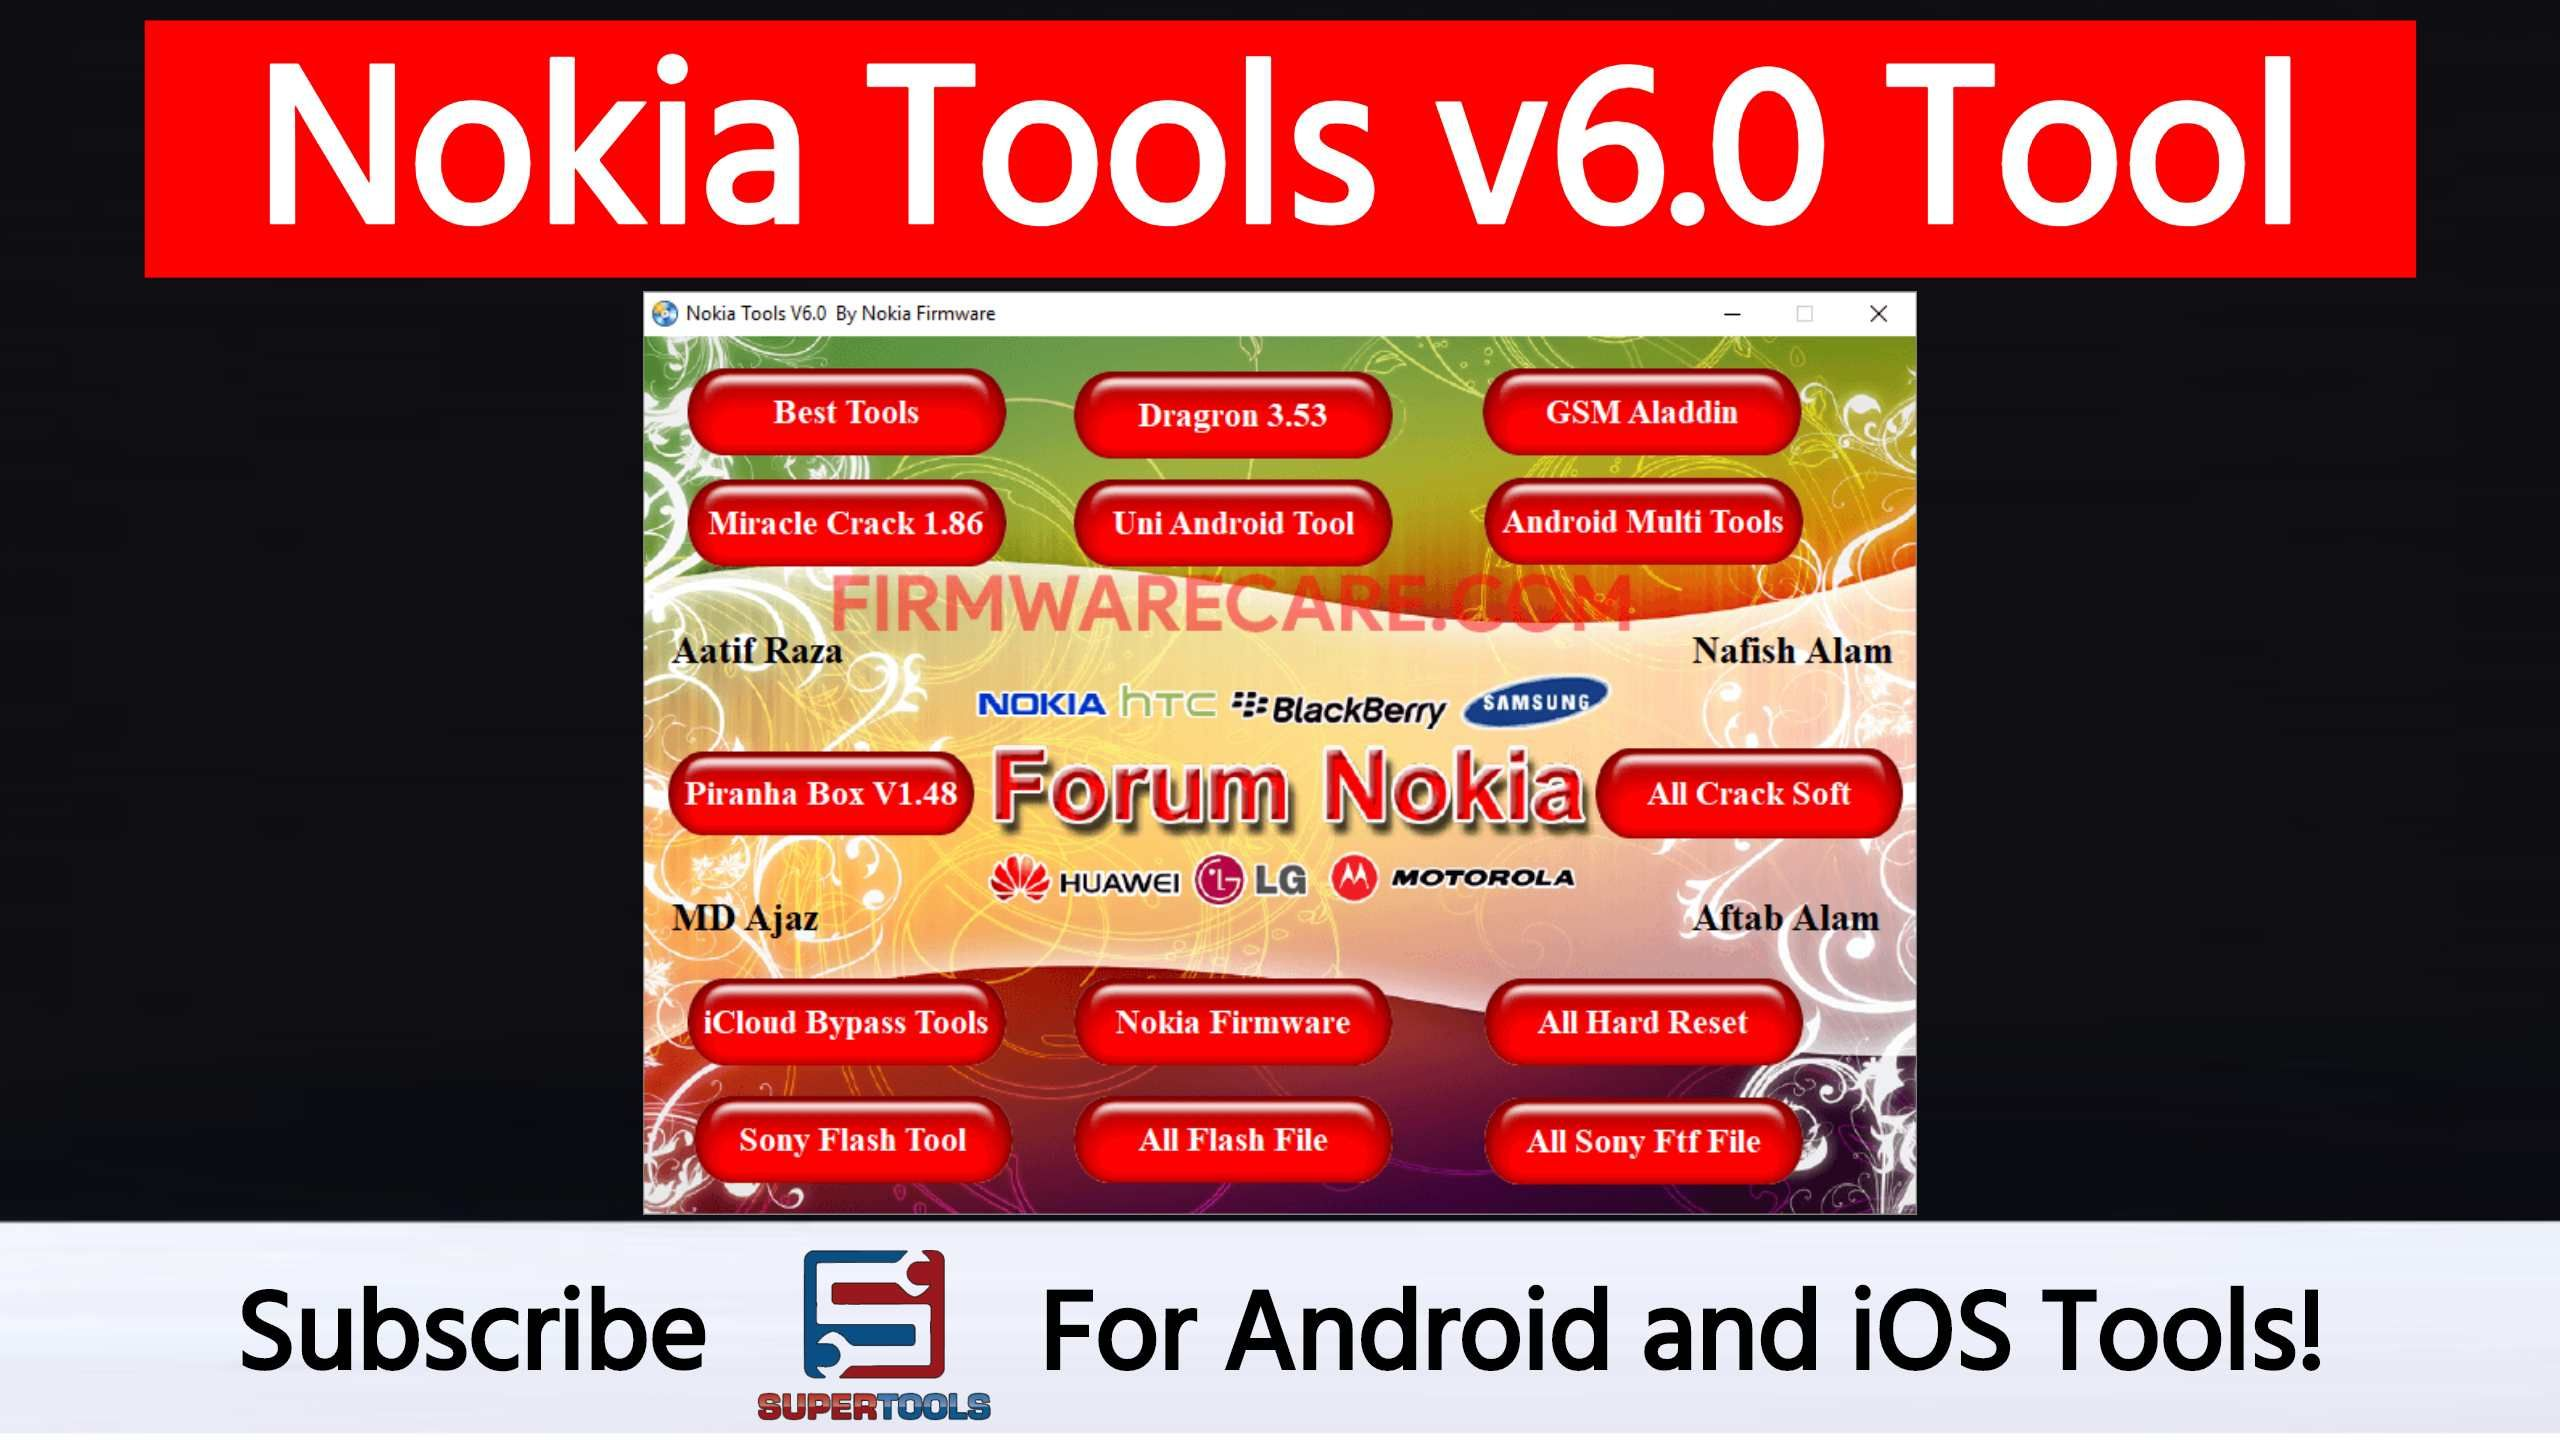 Nokia Tools V6 0 comes with multiple tools such as Dragon 3 53, GSM